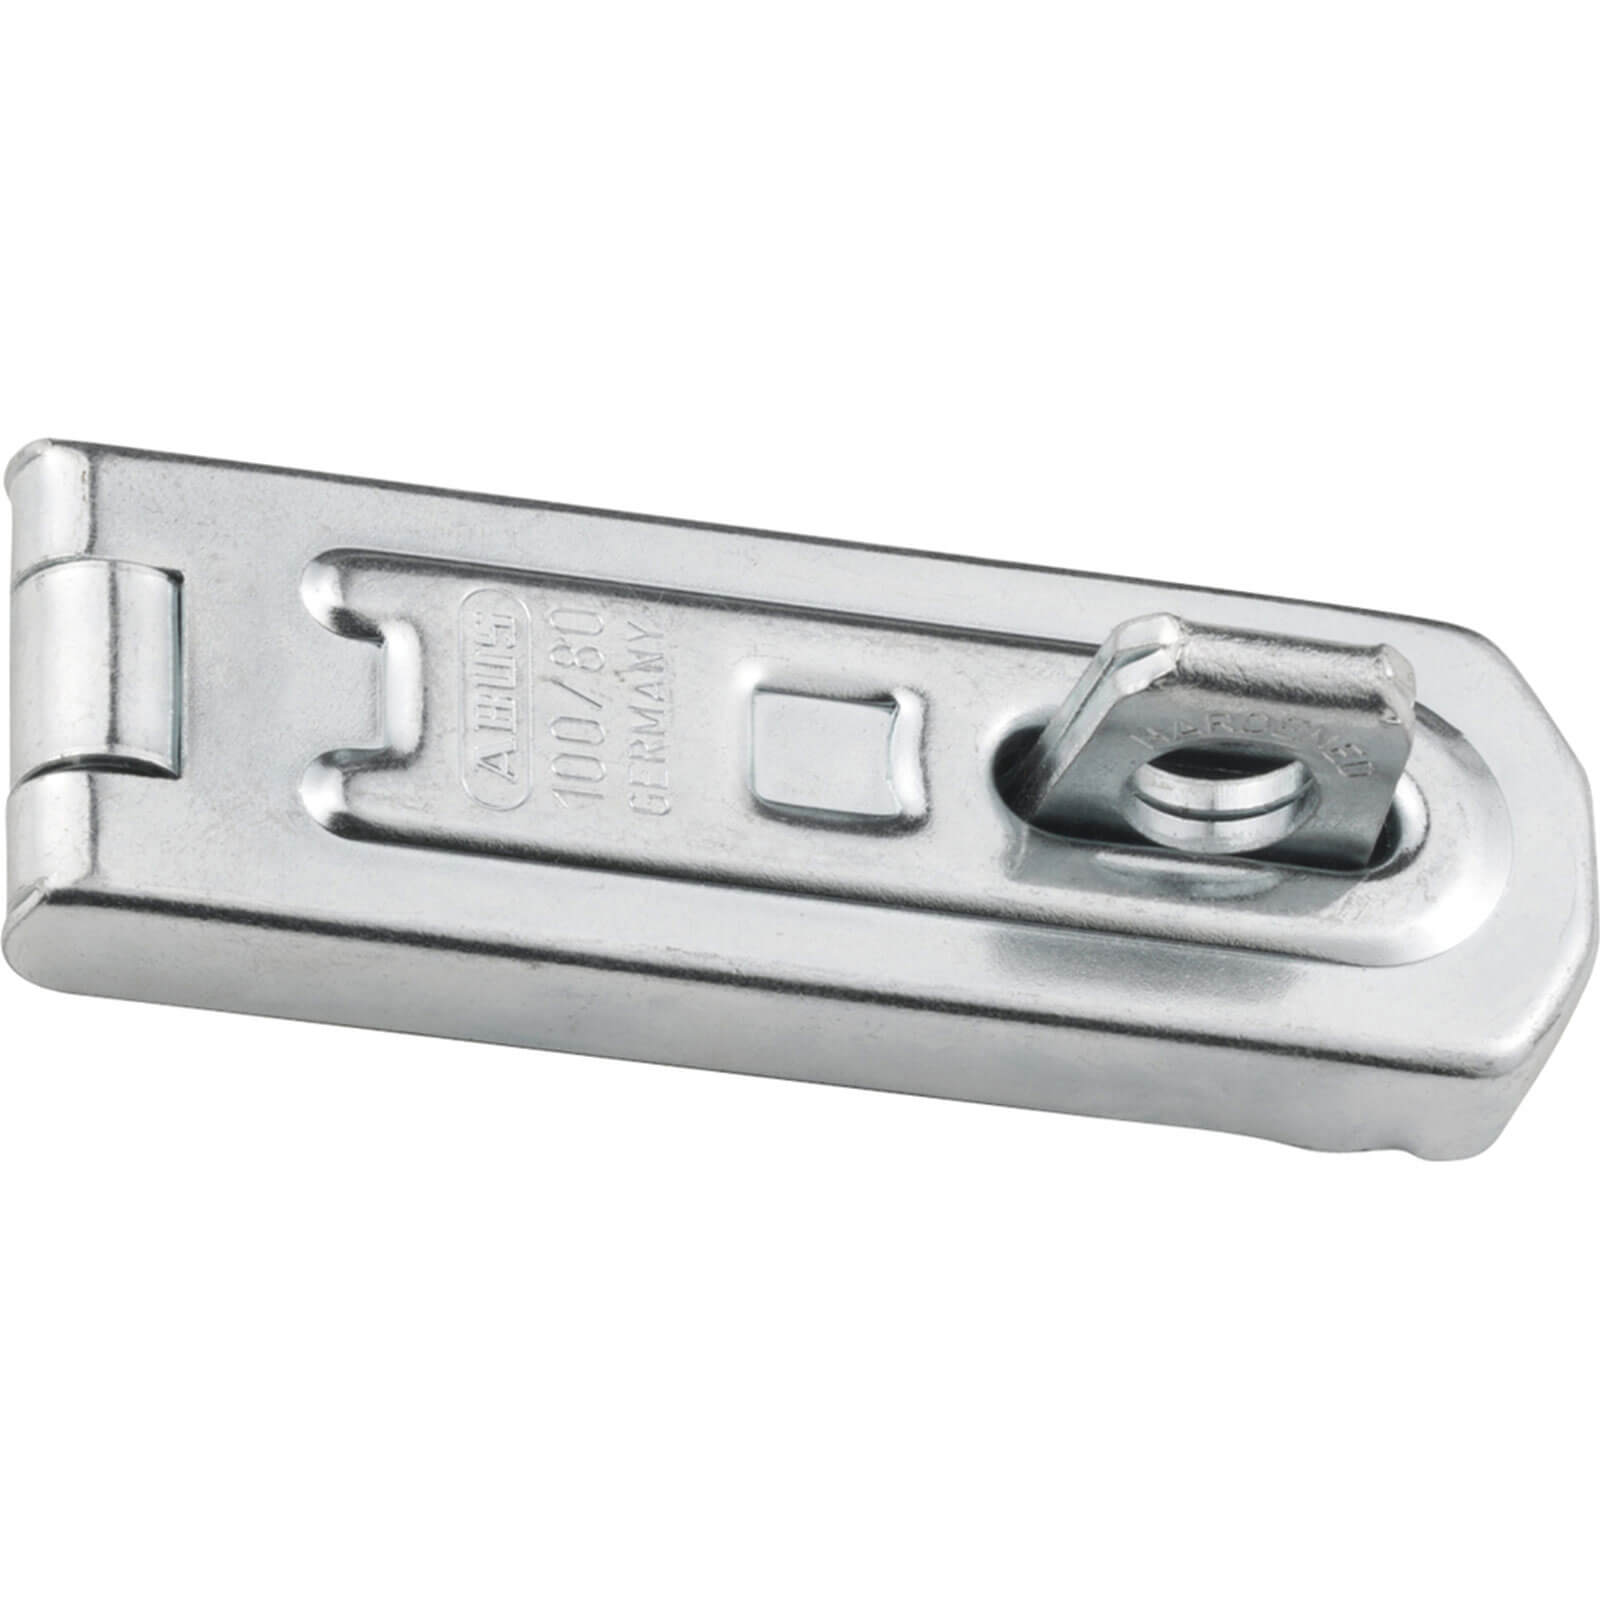 Image of Abus 100 Series Tradition Hasp & Staple 80mm